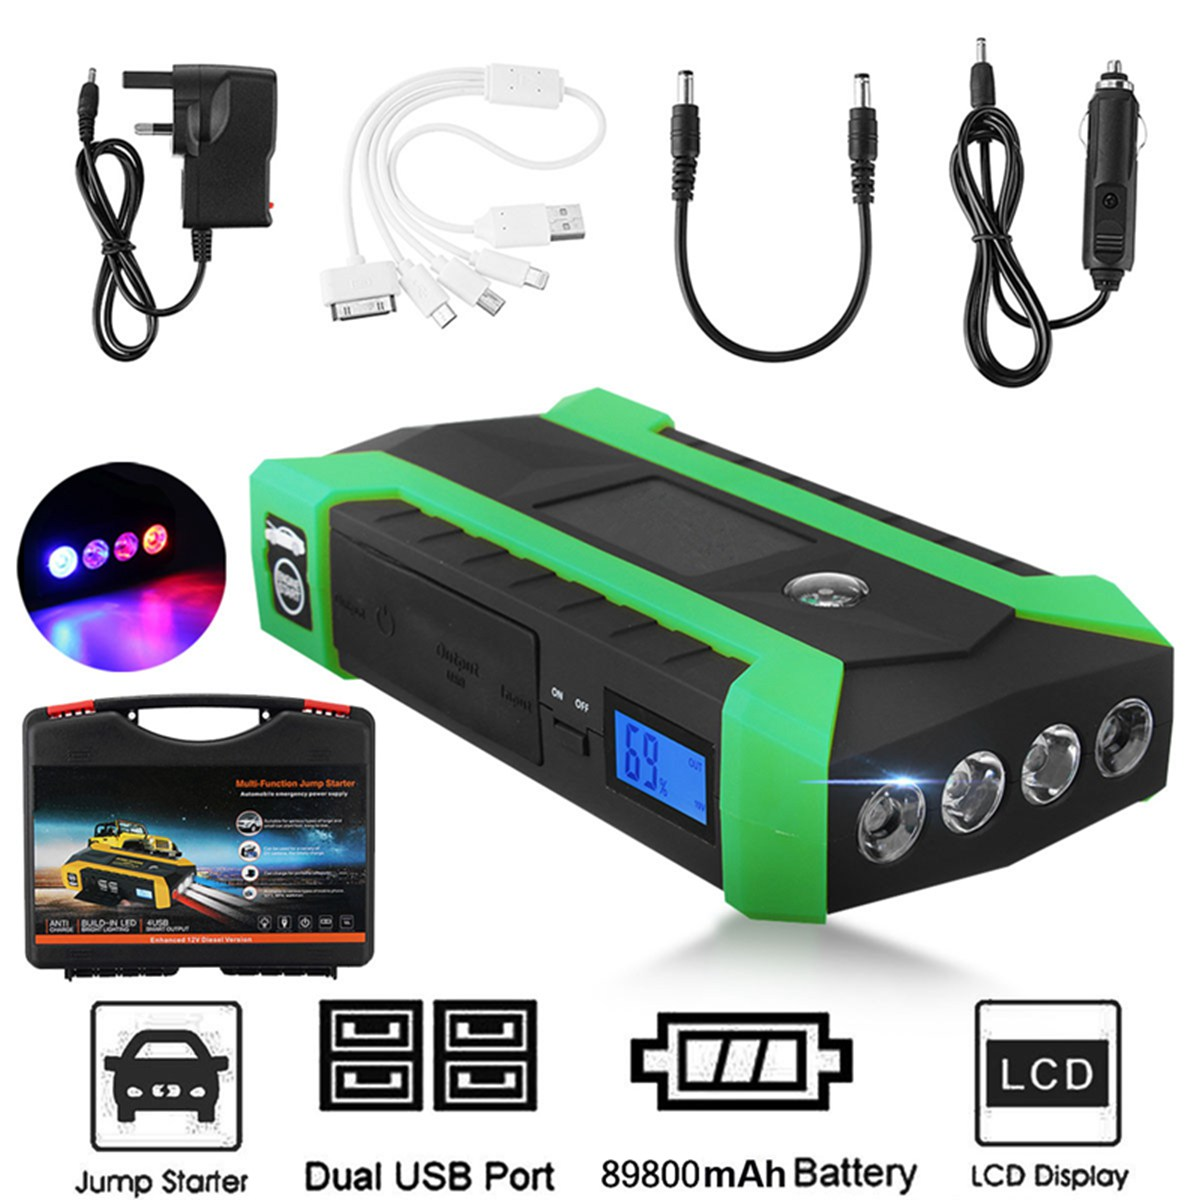 Useful 89800mAh 12V 4USB Multifunction Car Charger Battery Jump Starter LED Light Auto Emergency Mobile Power Bank Tool KitUseful 89800mAh 12V 4USB Multifunction Car Charger Battery Jump Starter LED Light Auto Emergency Mobile Power Bank Tool Kit